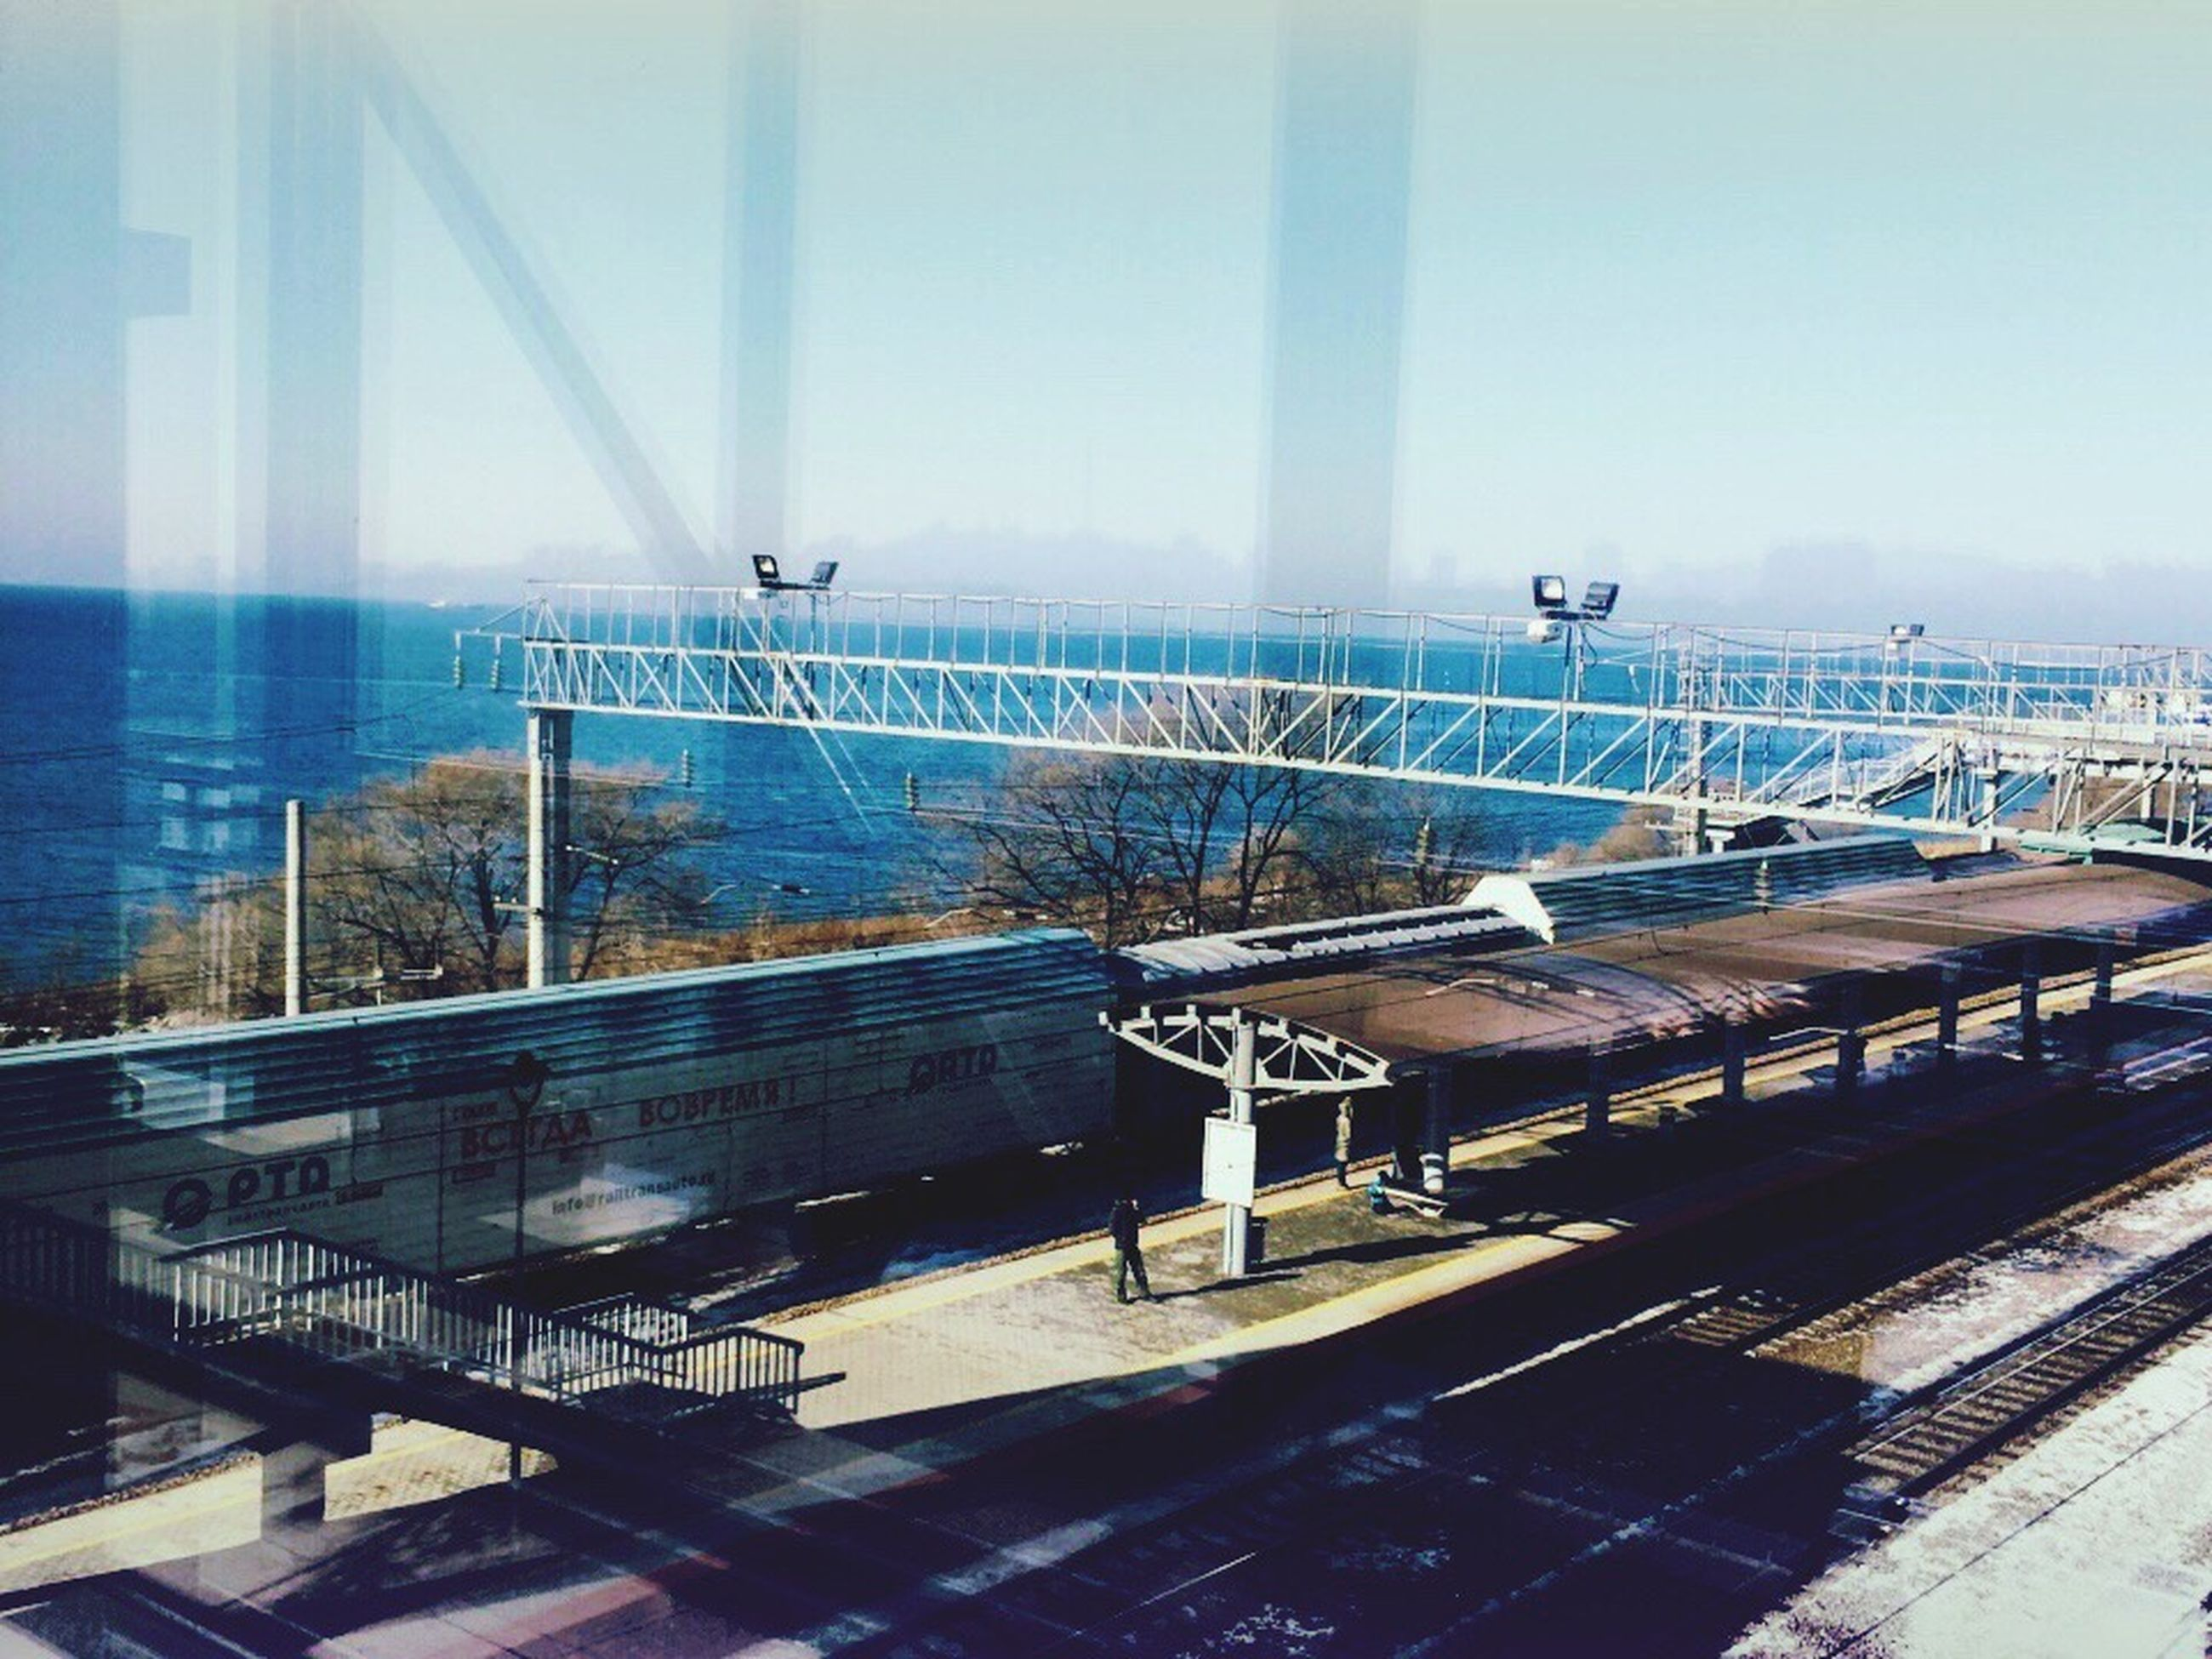 built structure, sea, architecture, sky, railing, day, outdoors, water, no people, building exterior, bridge - man made structure, city, horizon over water, nature, passenger boarding bridge